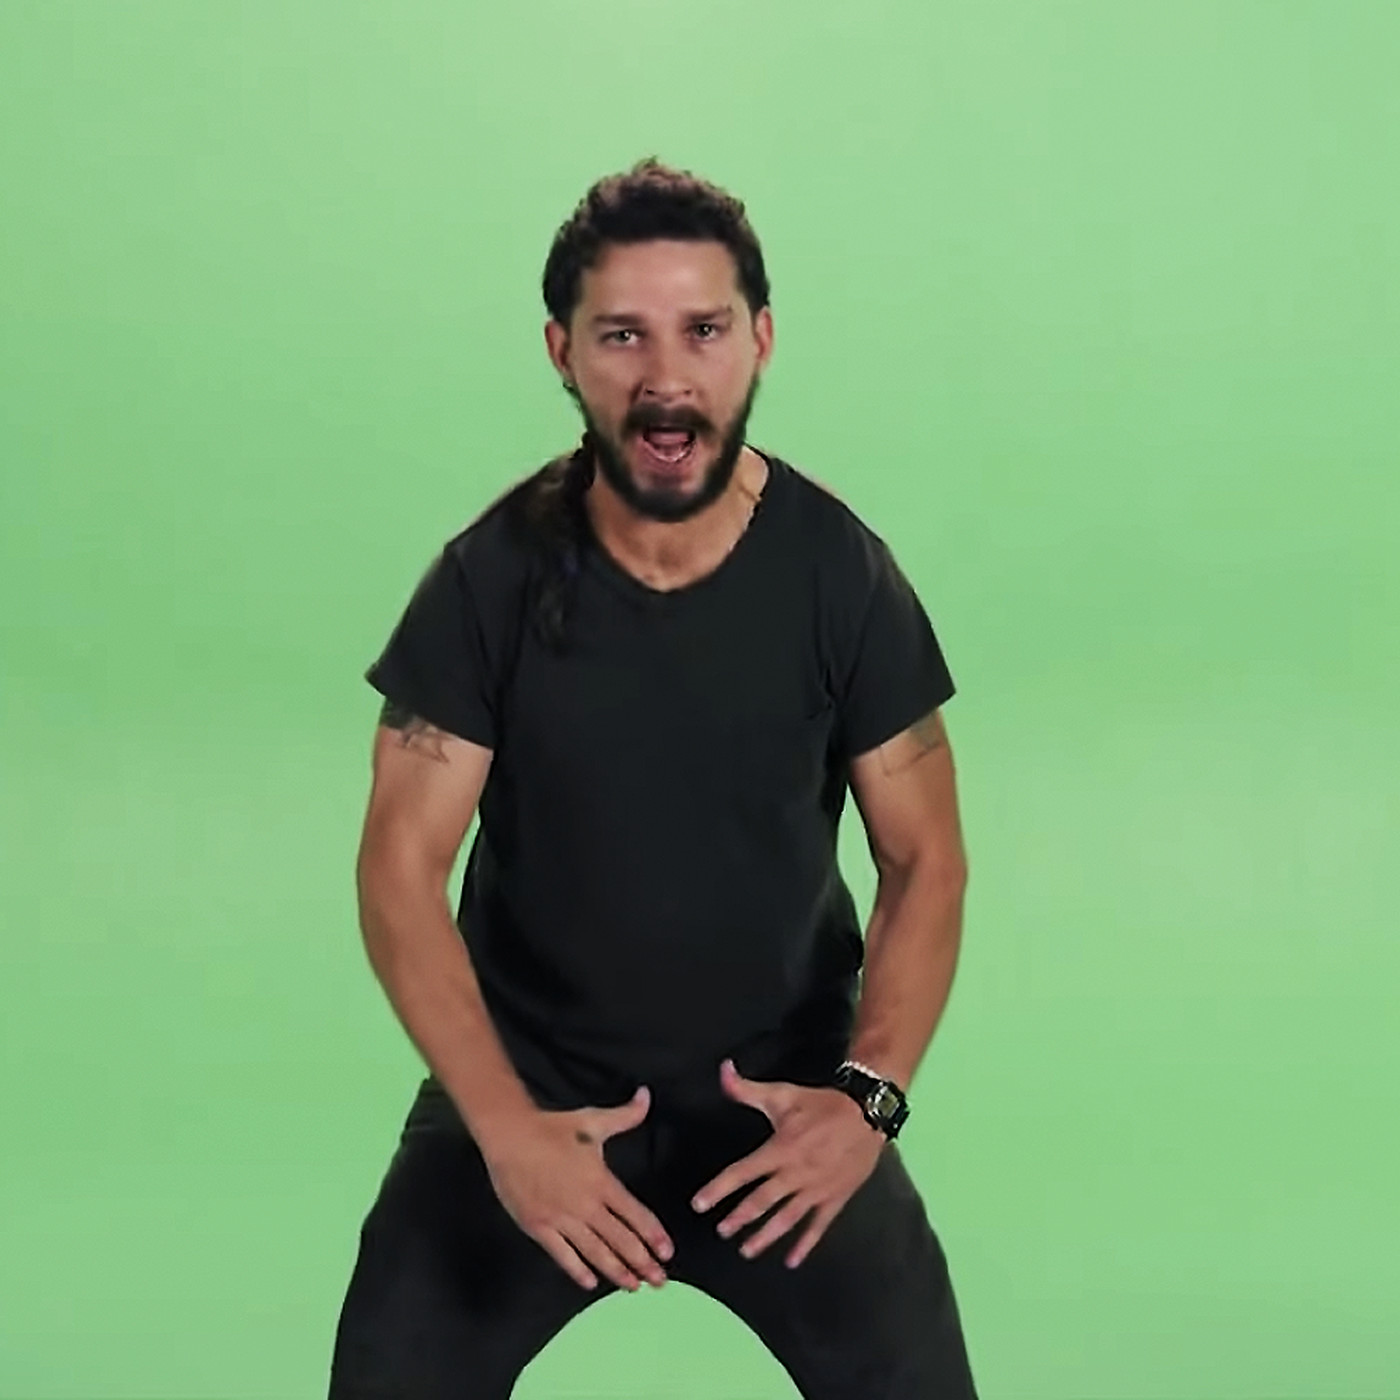 Shia LaBeouf scandal......what has the actor been up to now?